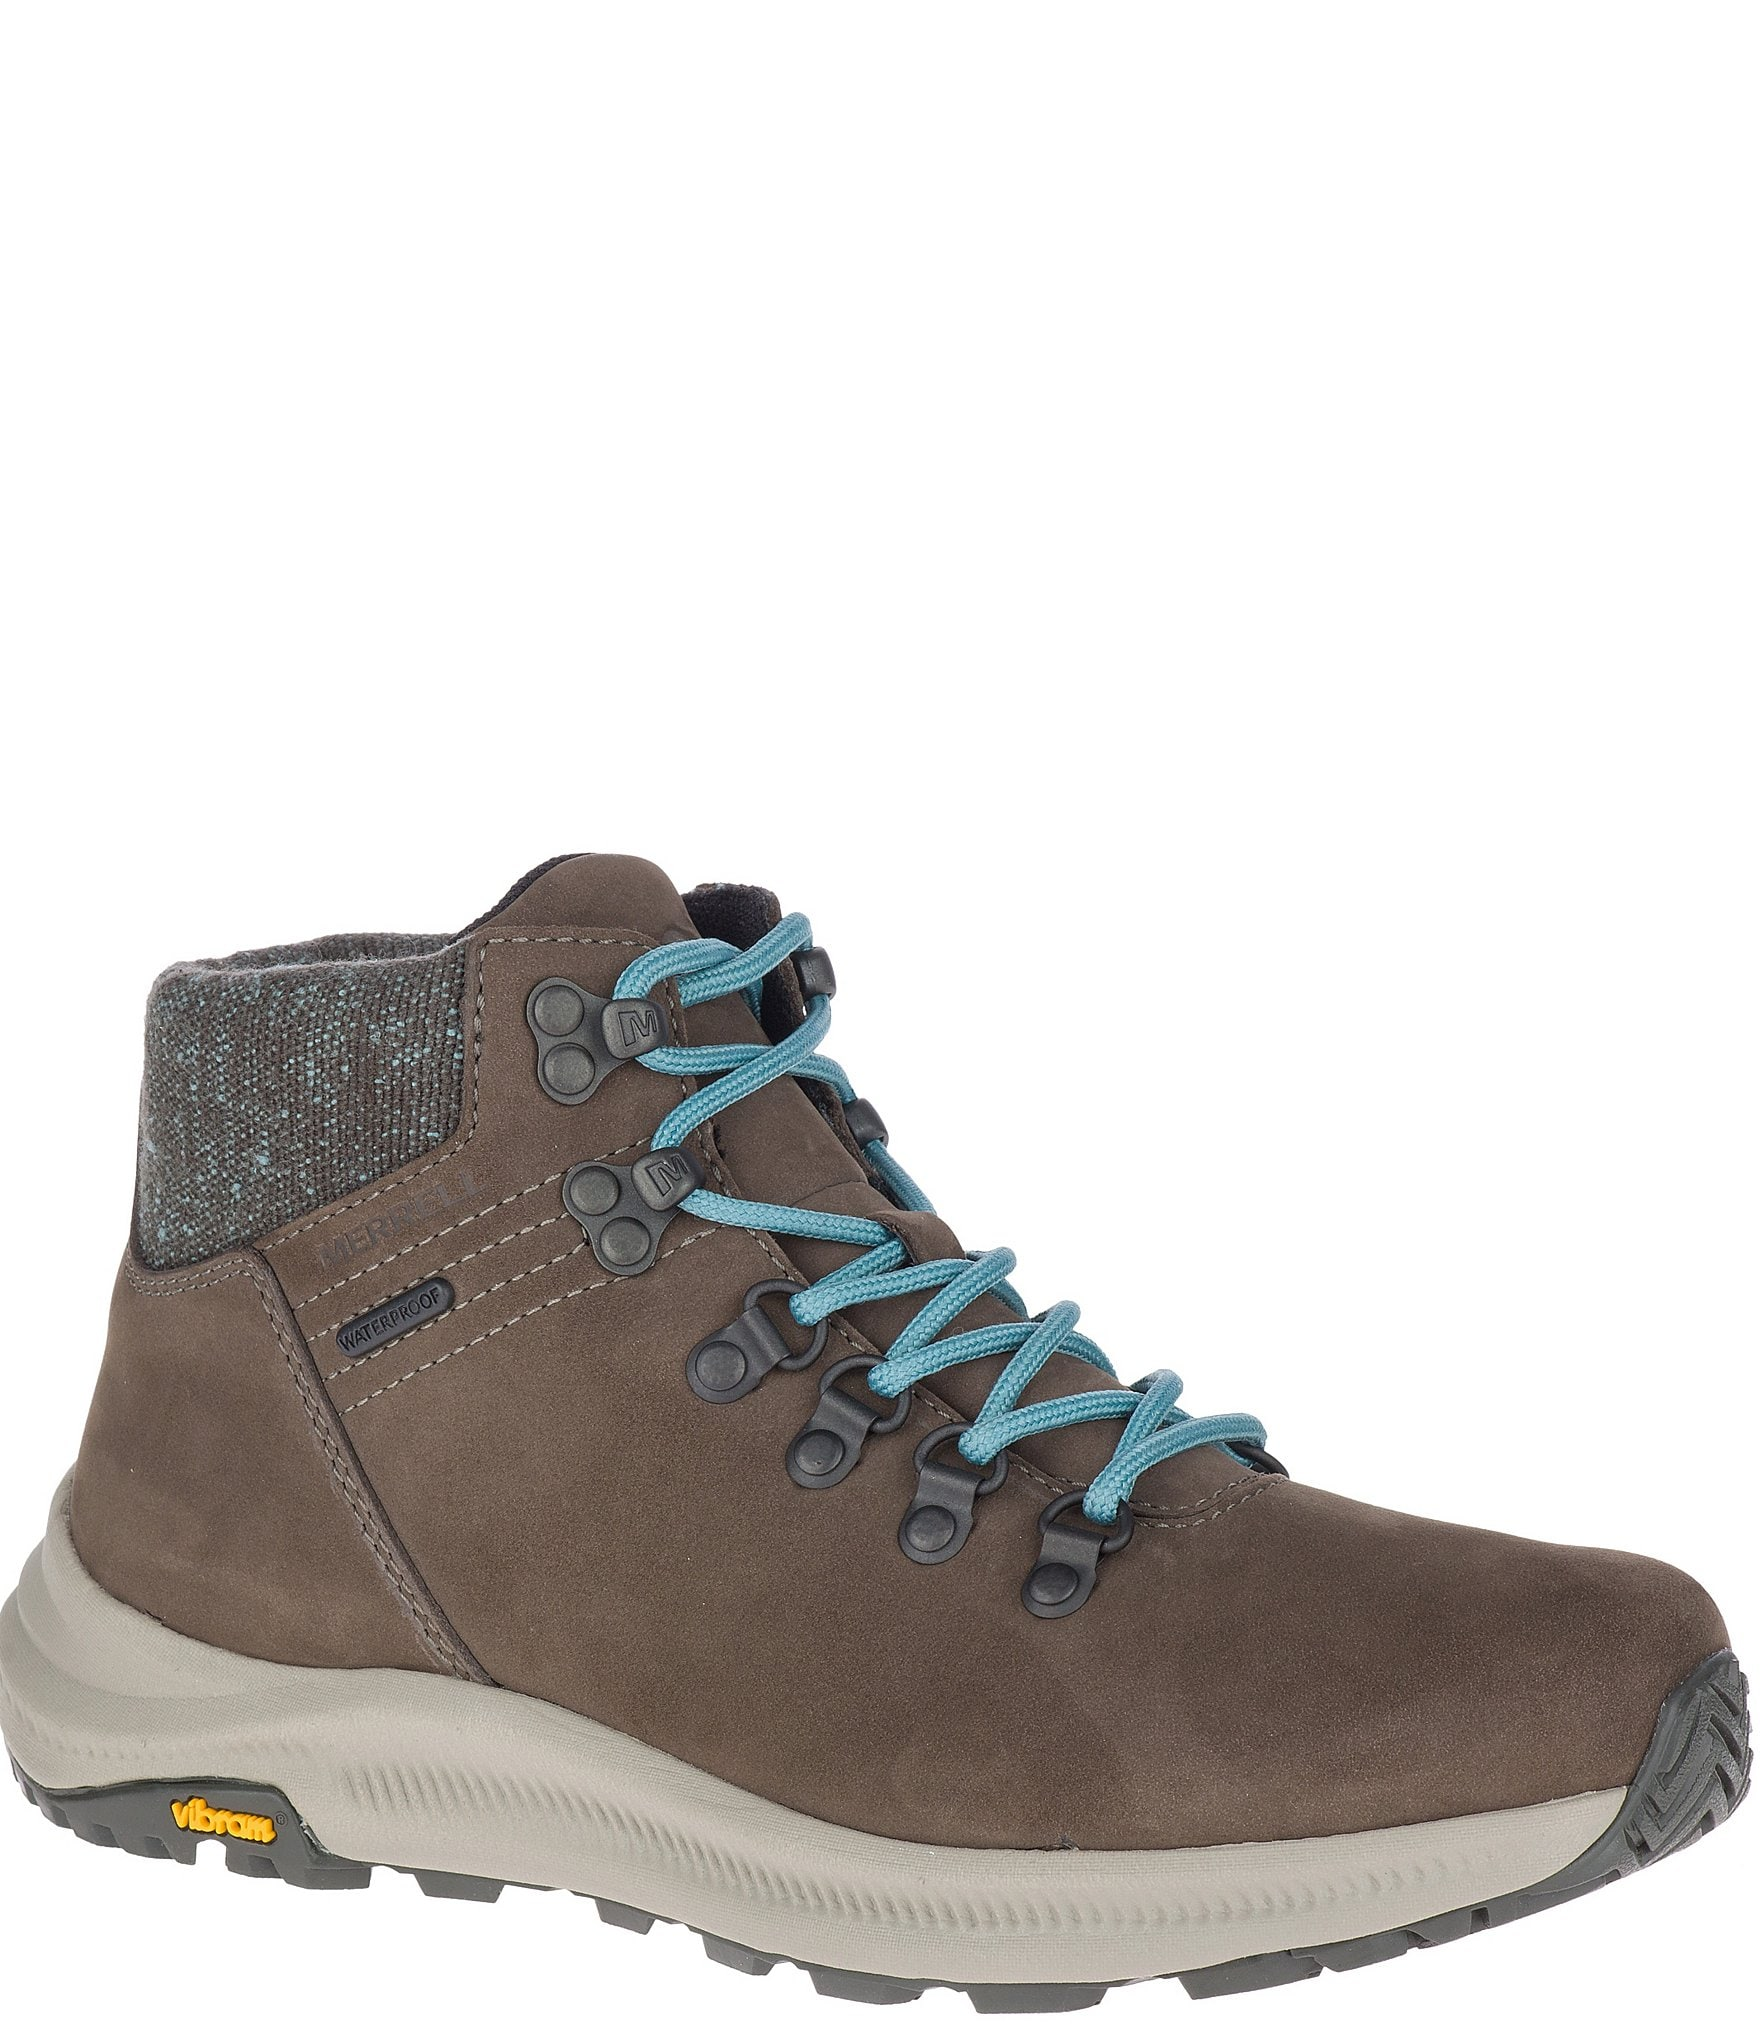 exceptional range of styles and colors top quality unequal in performance Merrell Ontario Mid Waterproof Hiking Booties